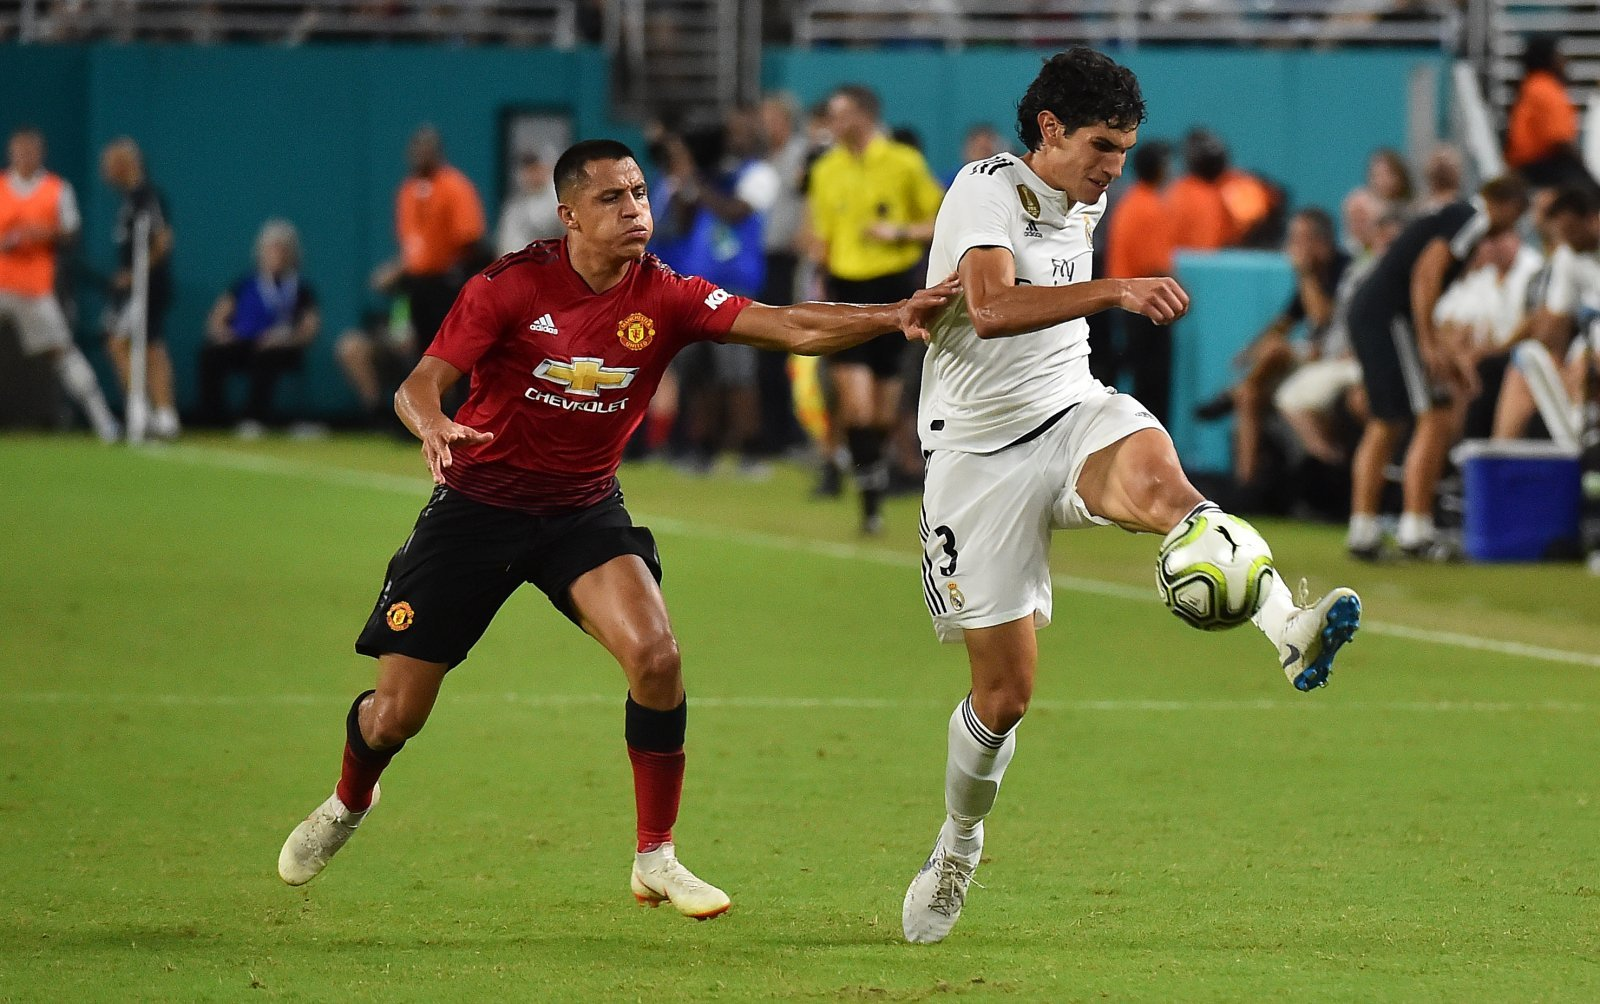 Defensively, Everton could improve by signing Jesus Vallejo